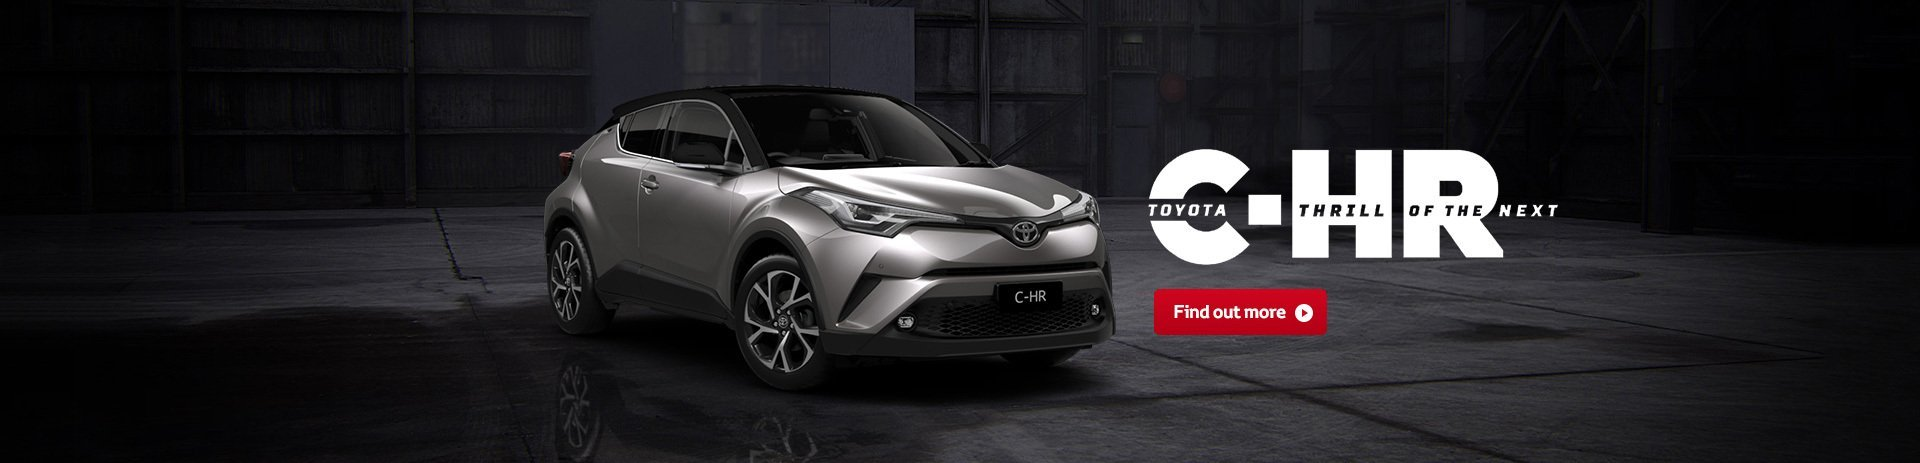 Toyota C-HR Thrill of the Next